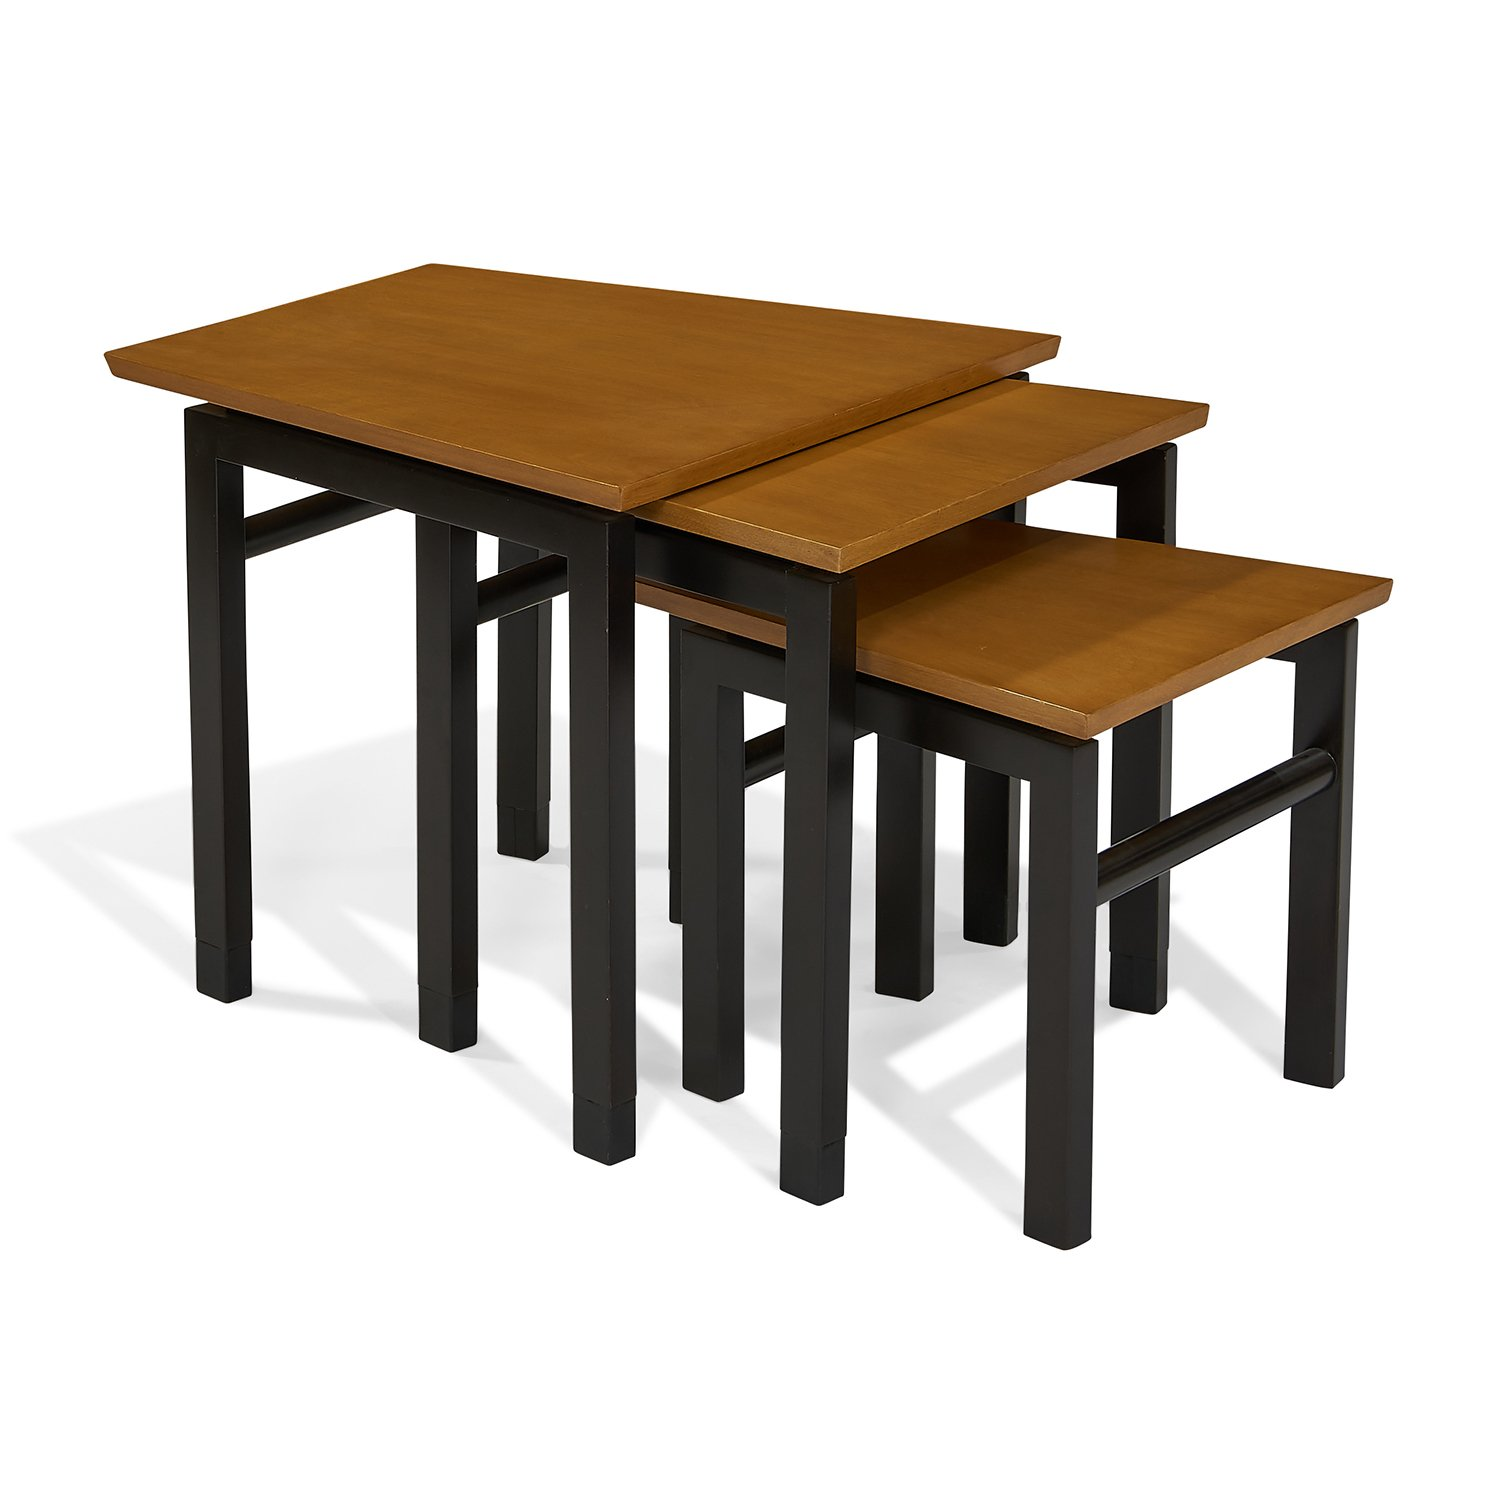 """Edward Wormley (1907-1995) for Dunbar nesting tables, set of three largest: 26""""w x 25""""d x 22""""h"""